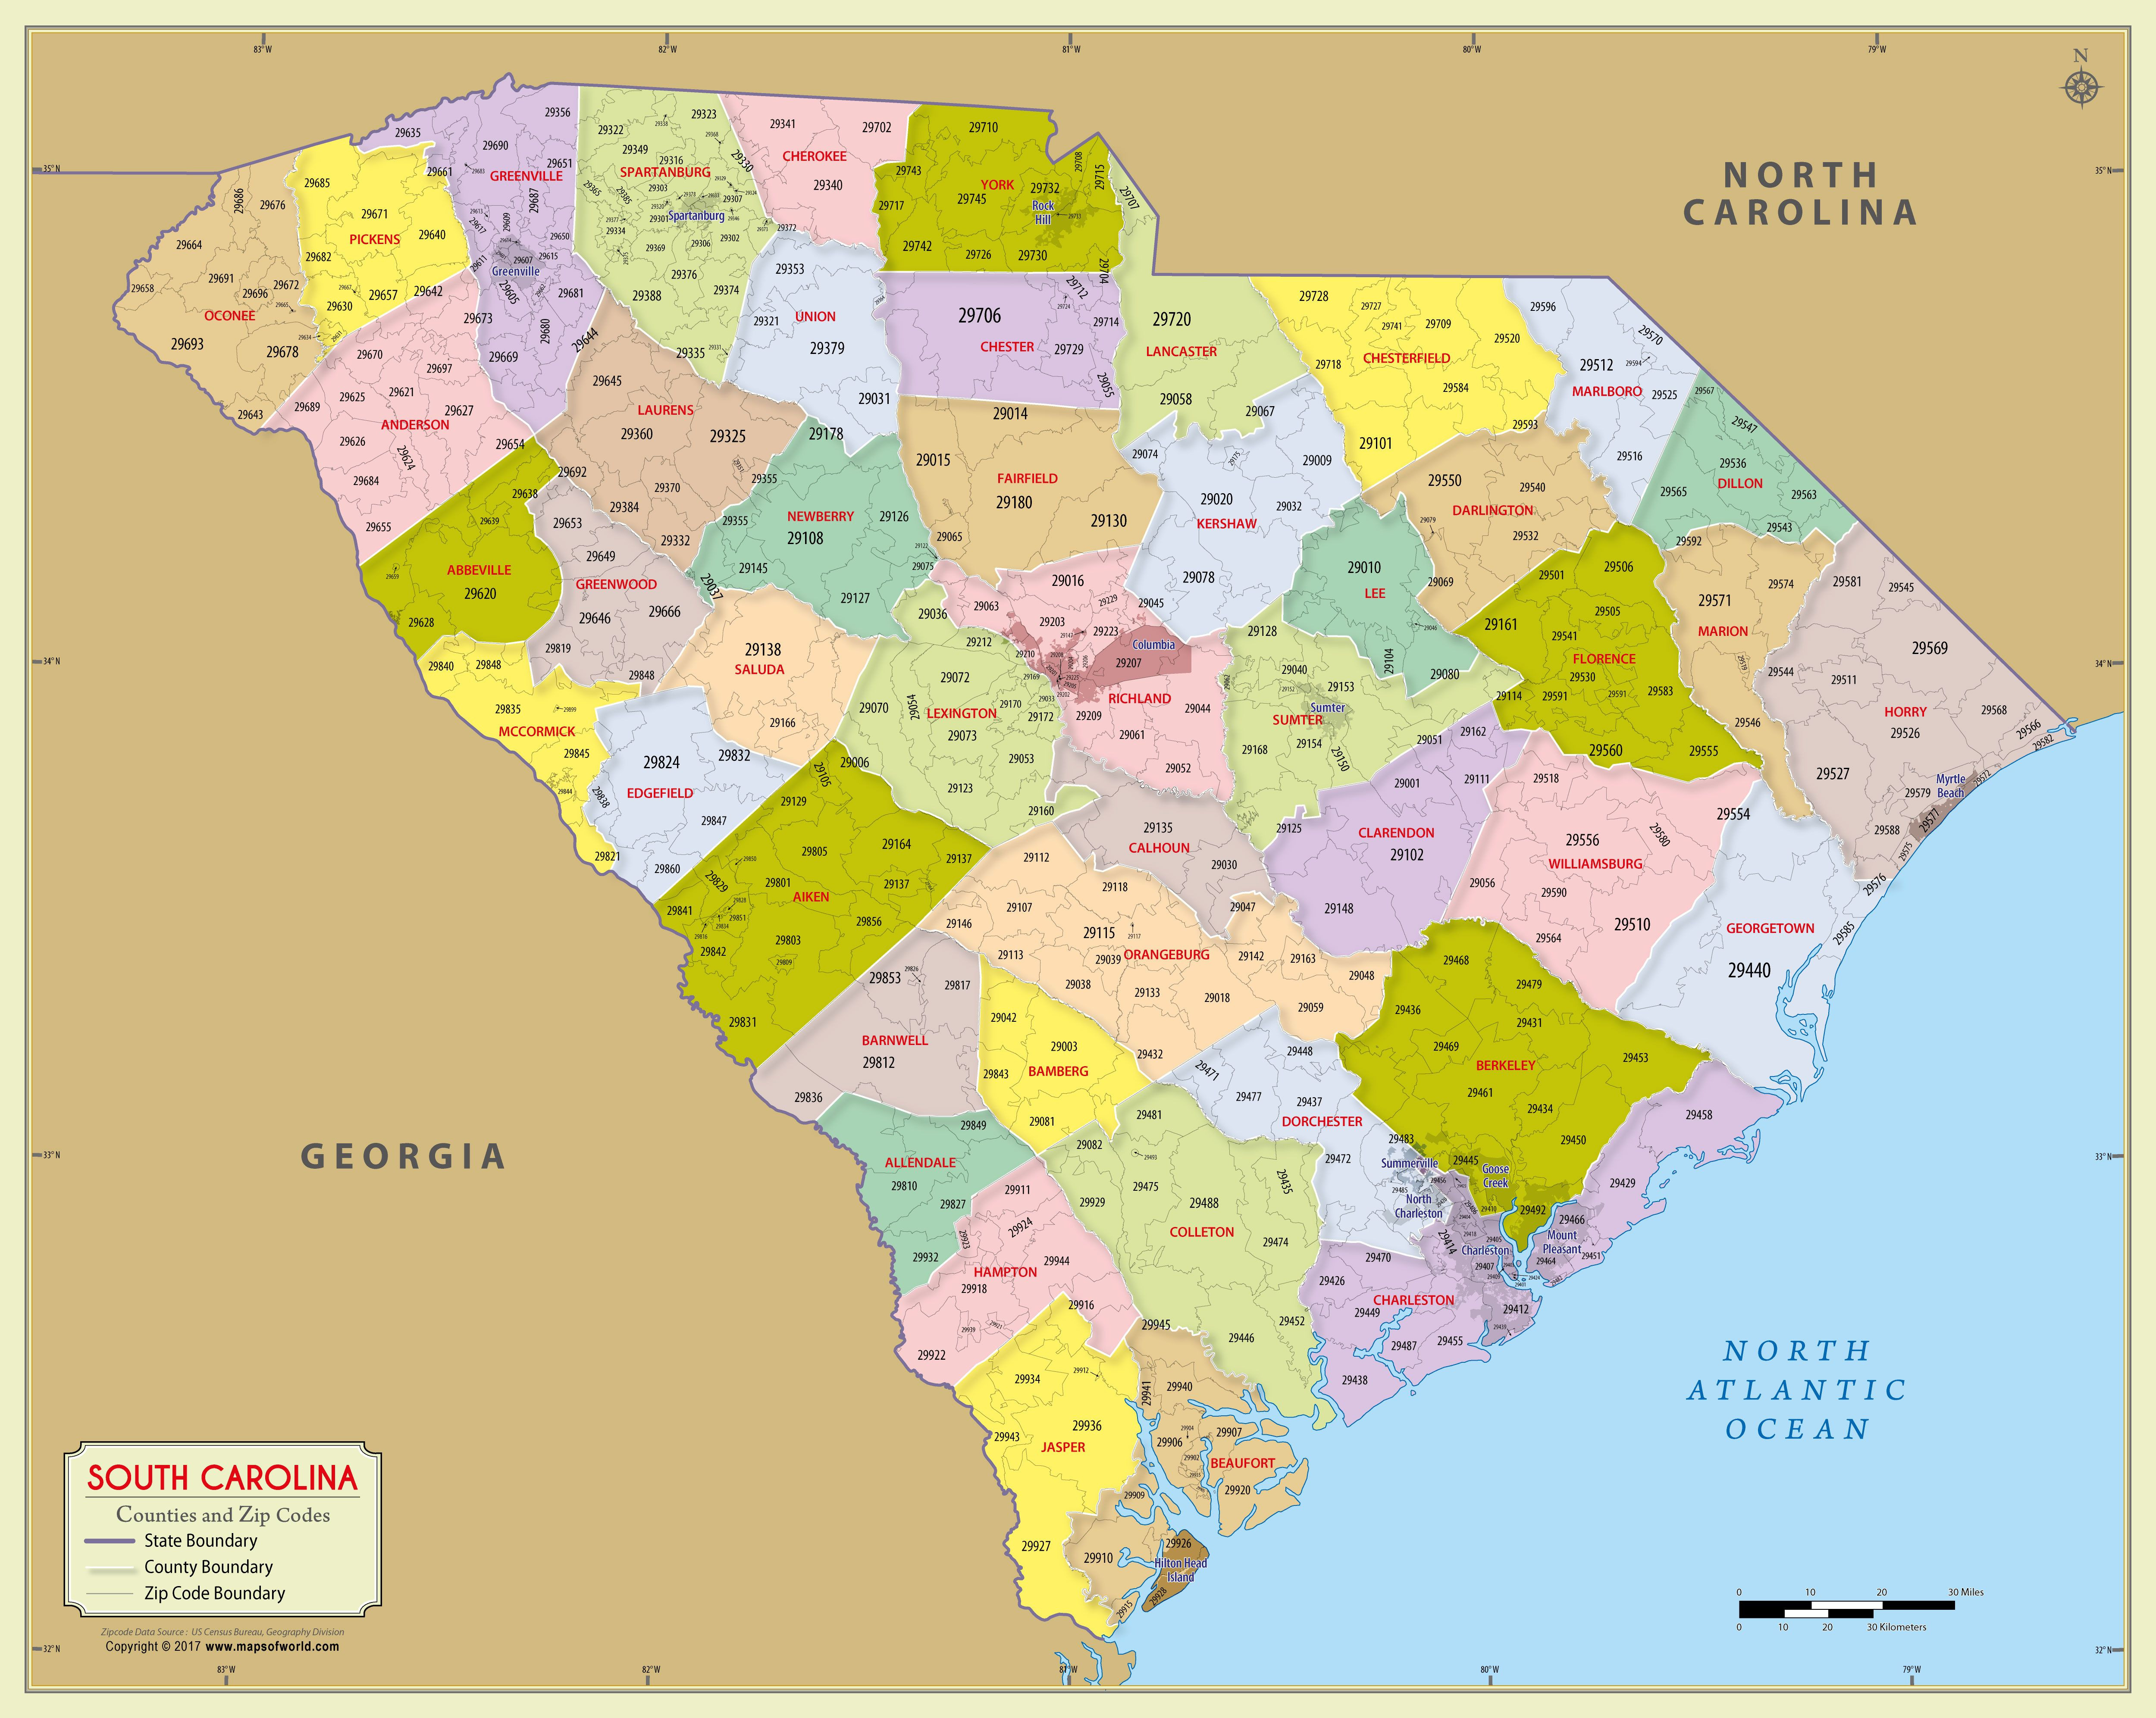 Buy South Carolina Zip Code Map With Counties from Worldmapstore in different sizes and best printable